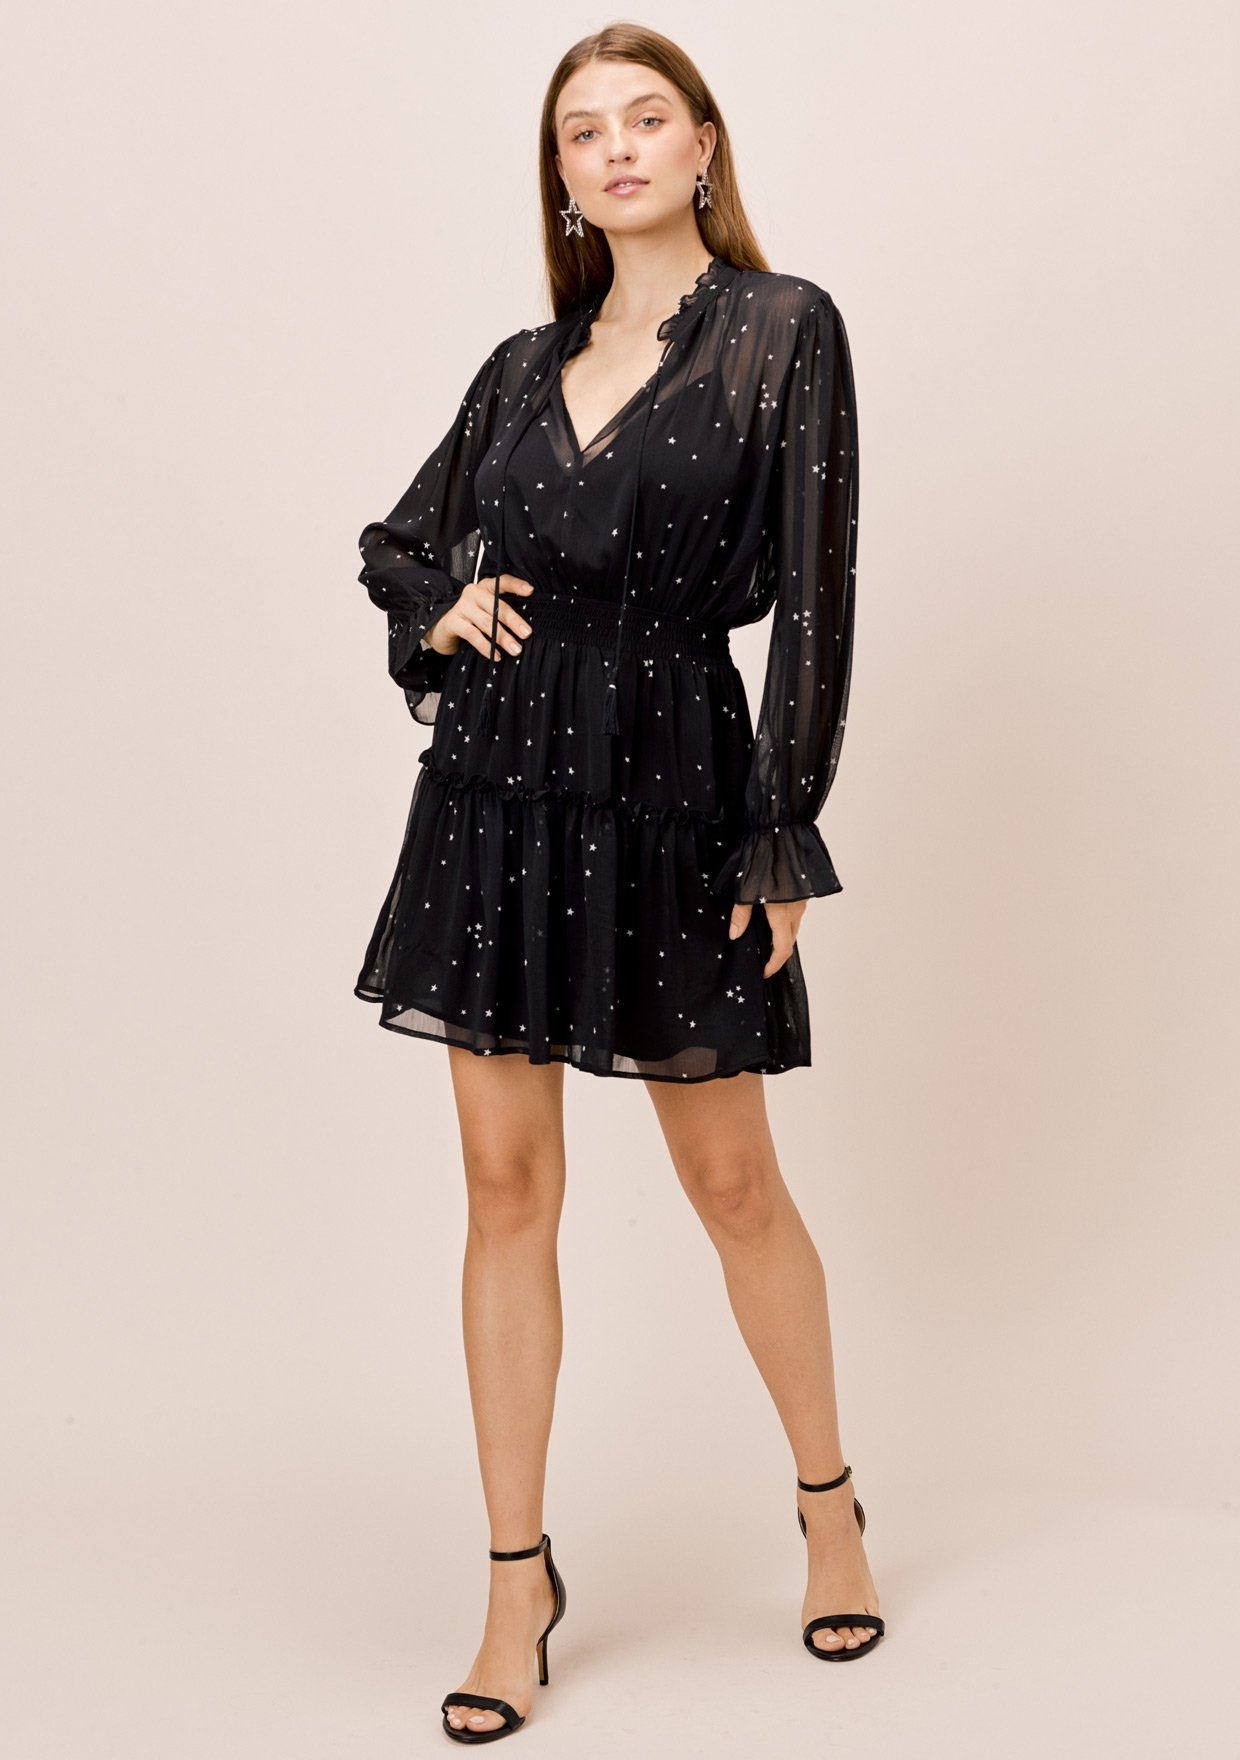 [Color: Midnight/Ivory] Lovestitch sheer star printed long sleeve mini dress with smocked waist and ruffle details.